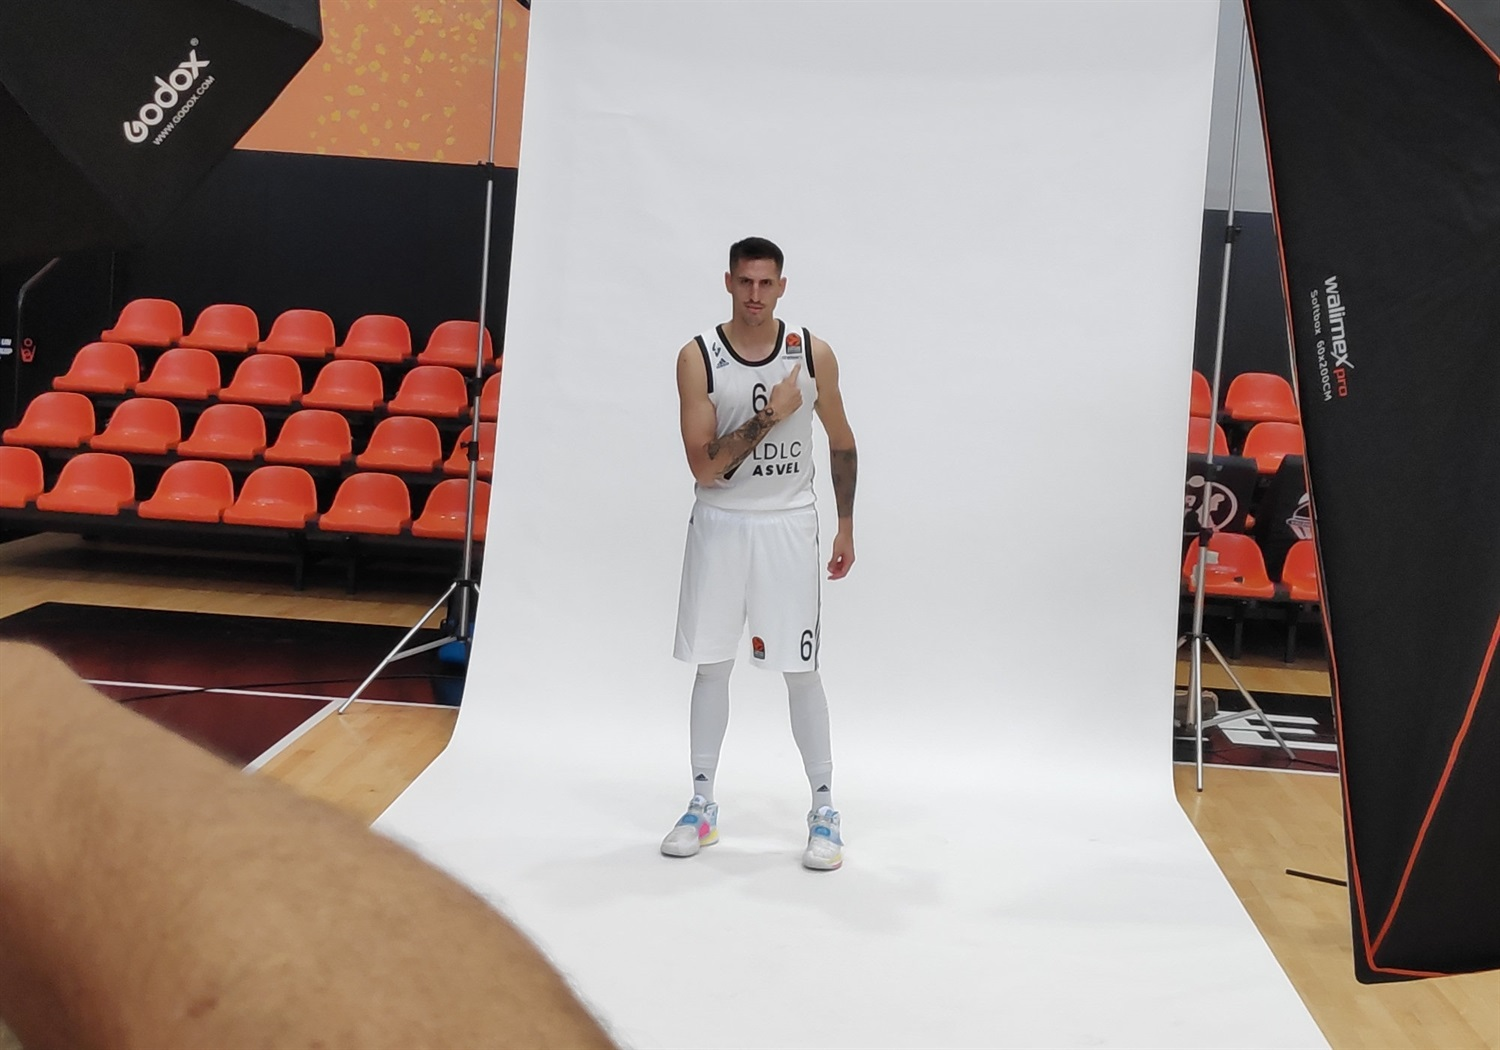 Paul Lacombe - LDLC ASVEL Villeurbanne Media Day - EB20